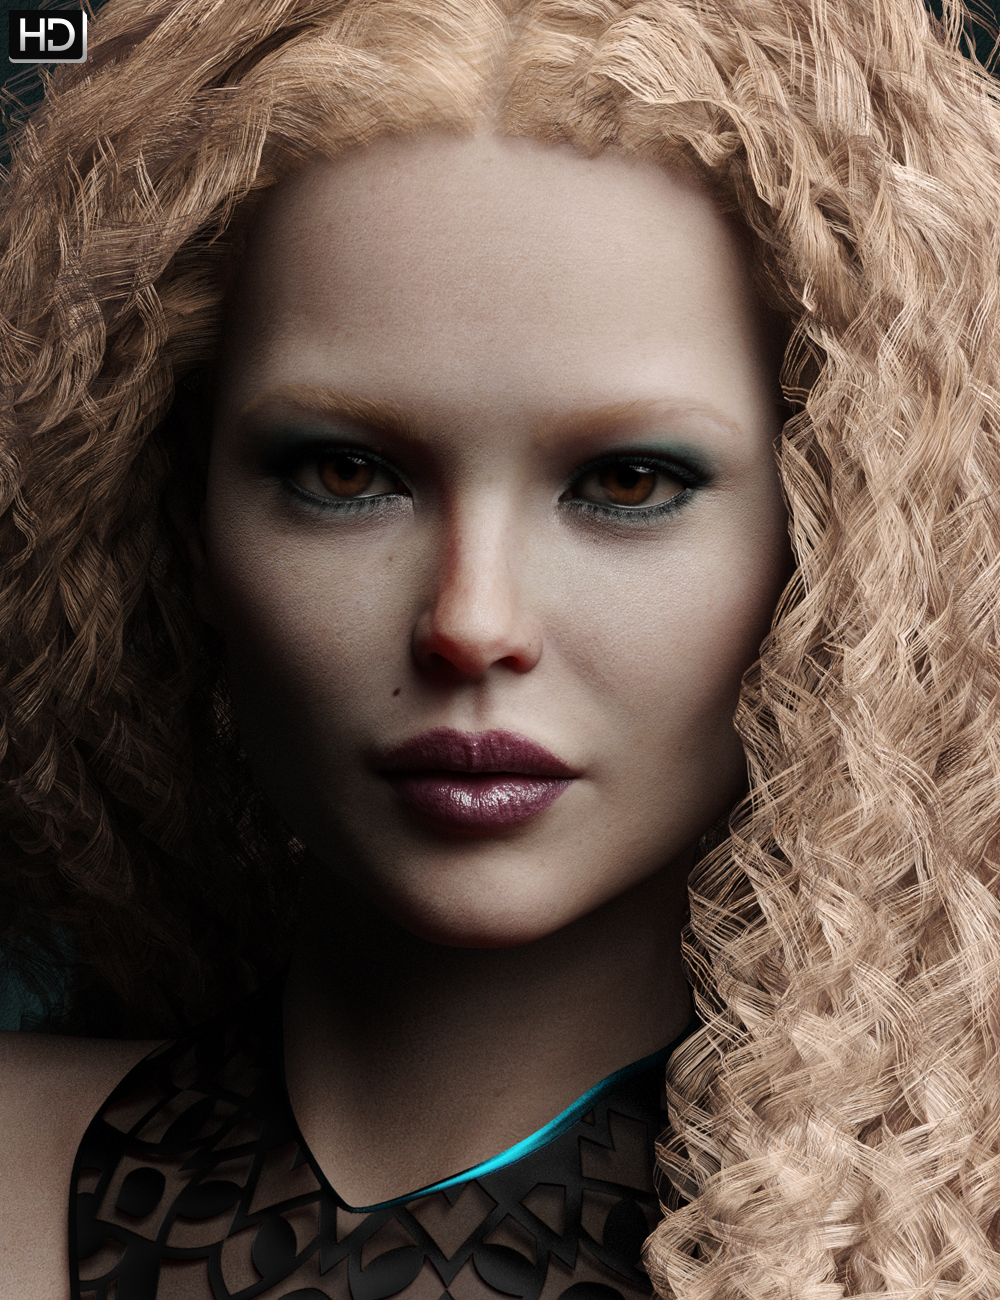 Shawna HD for Victoria 8 by: Emrys, 3D Models by Daz 3D